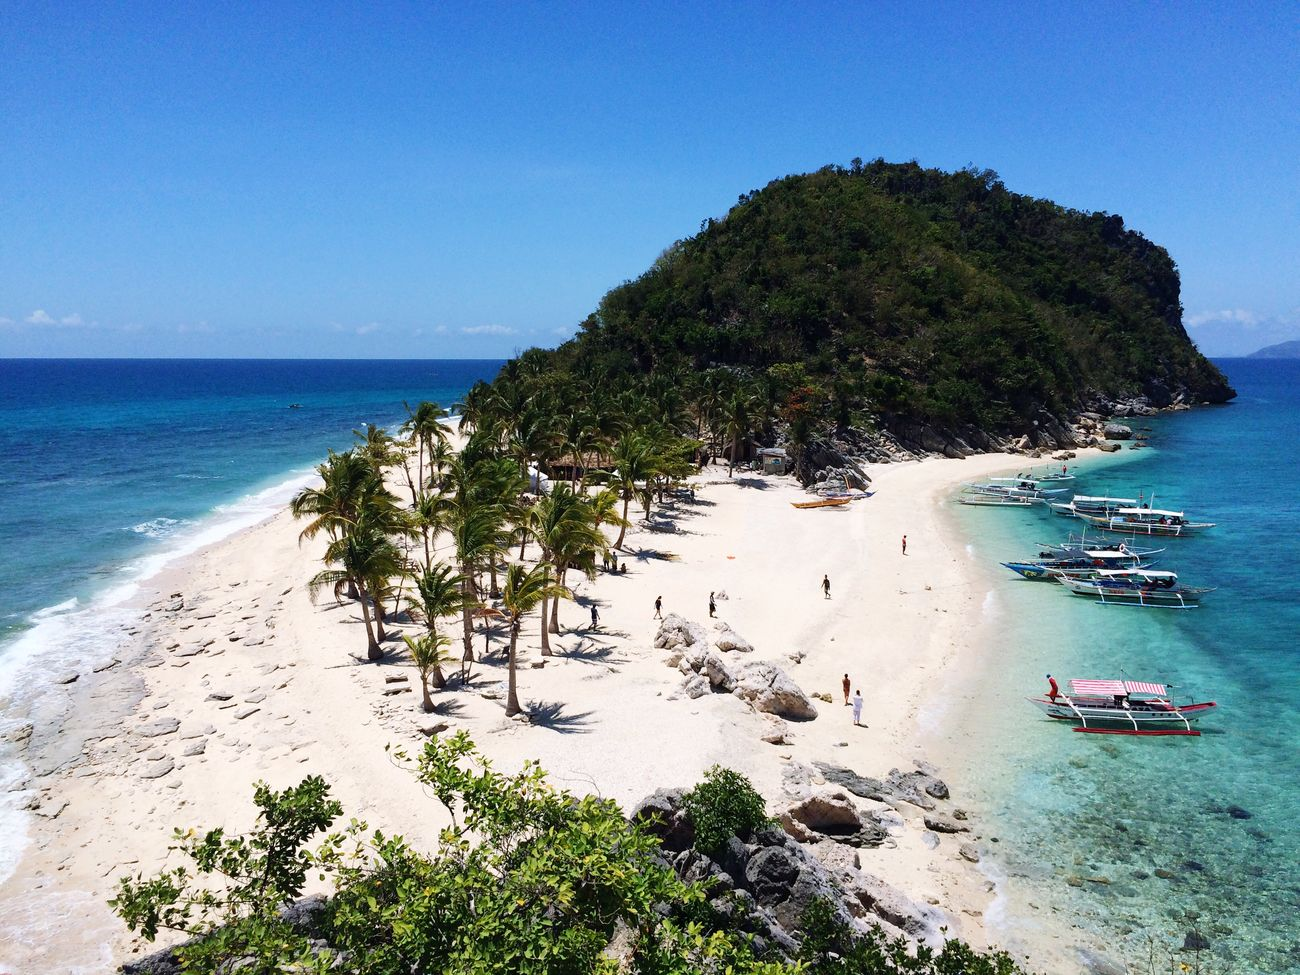 Island Life over the weekend. Welcome to summer in the Philippines ☀️🌴 Travel TravelPhilippines Gigantes Beach